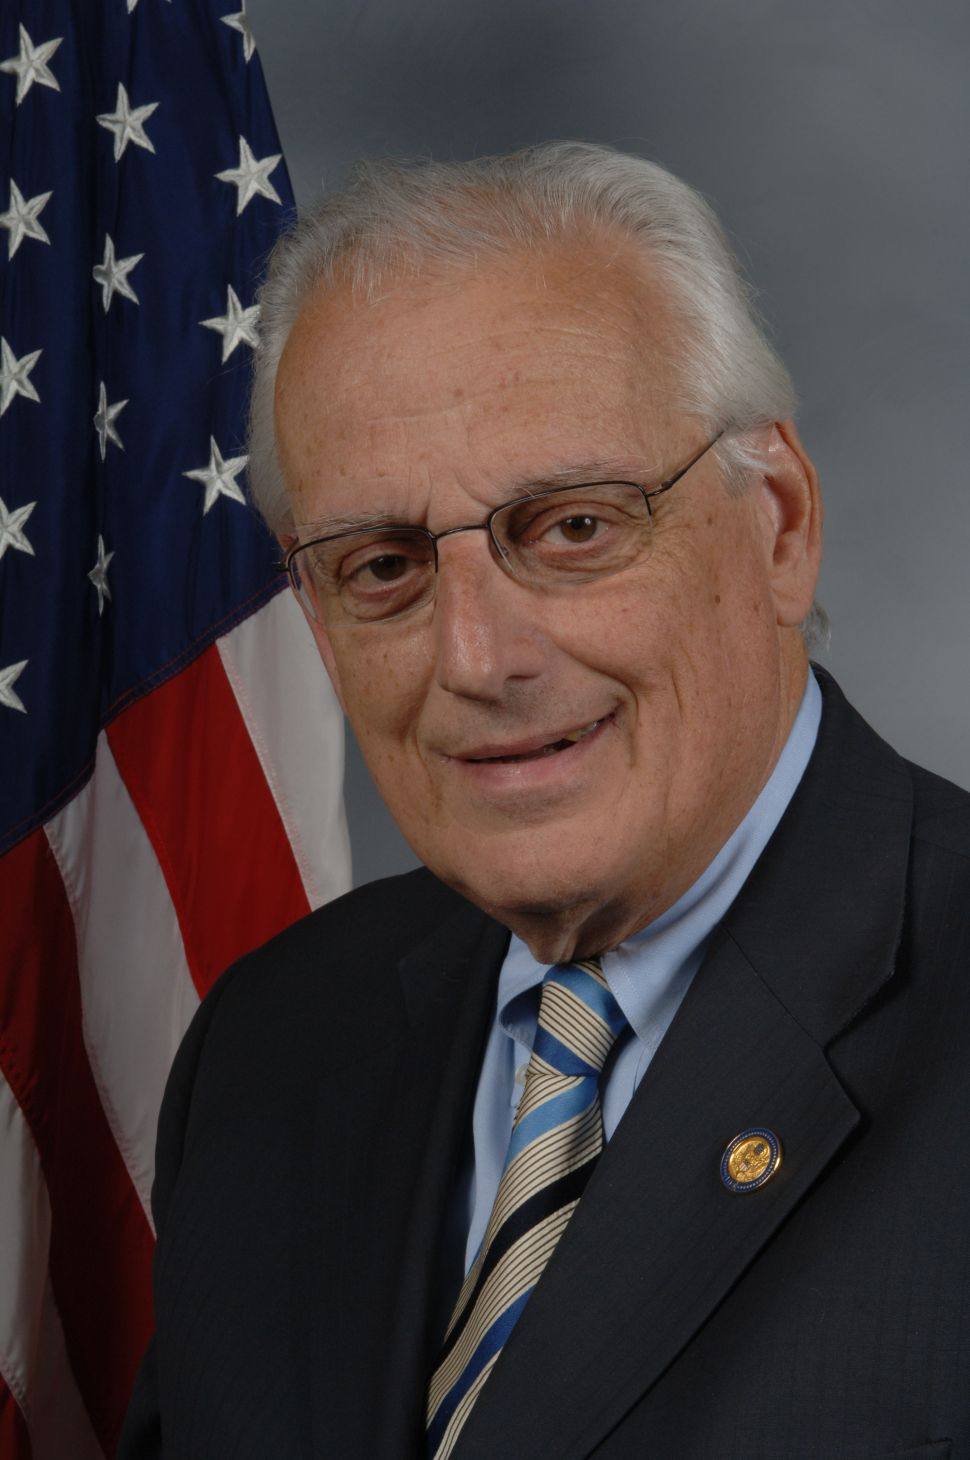 Pascrell criticizes Garrett for aligning with GOP's 'most extreme'